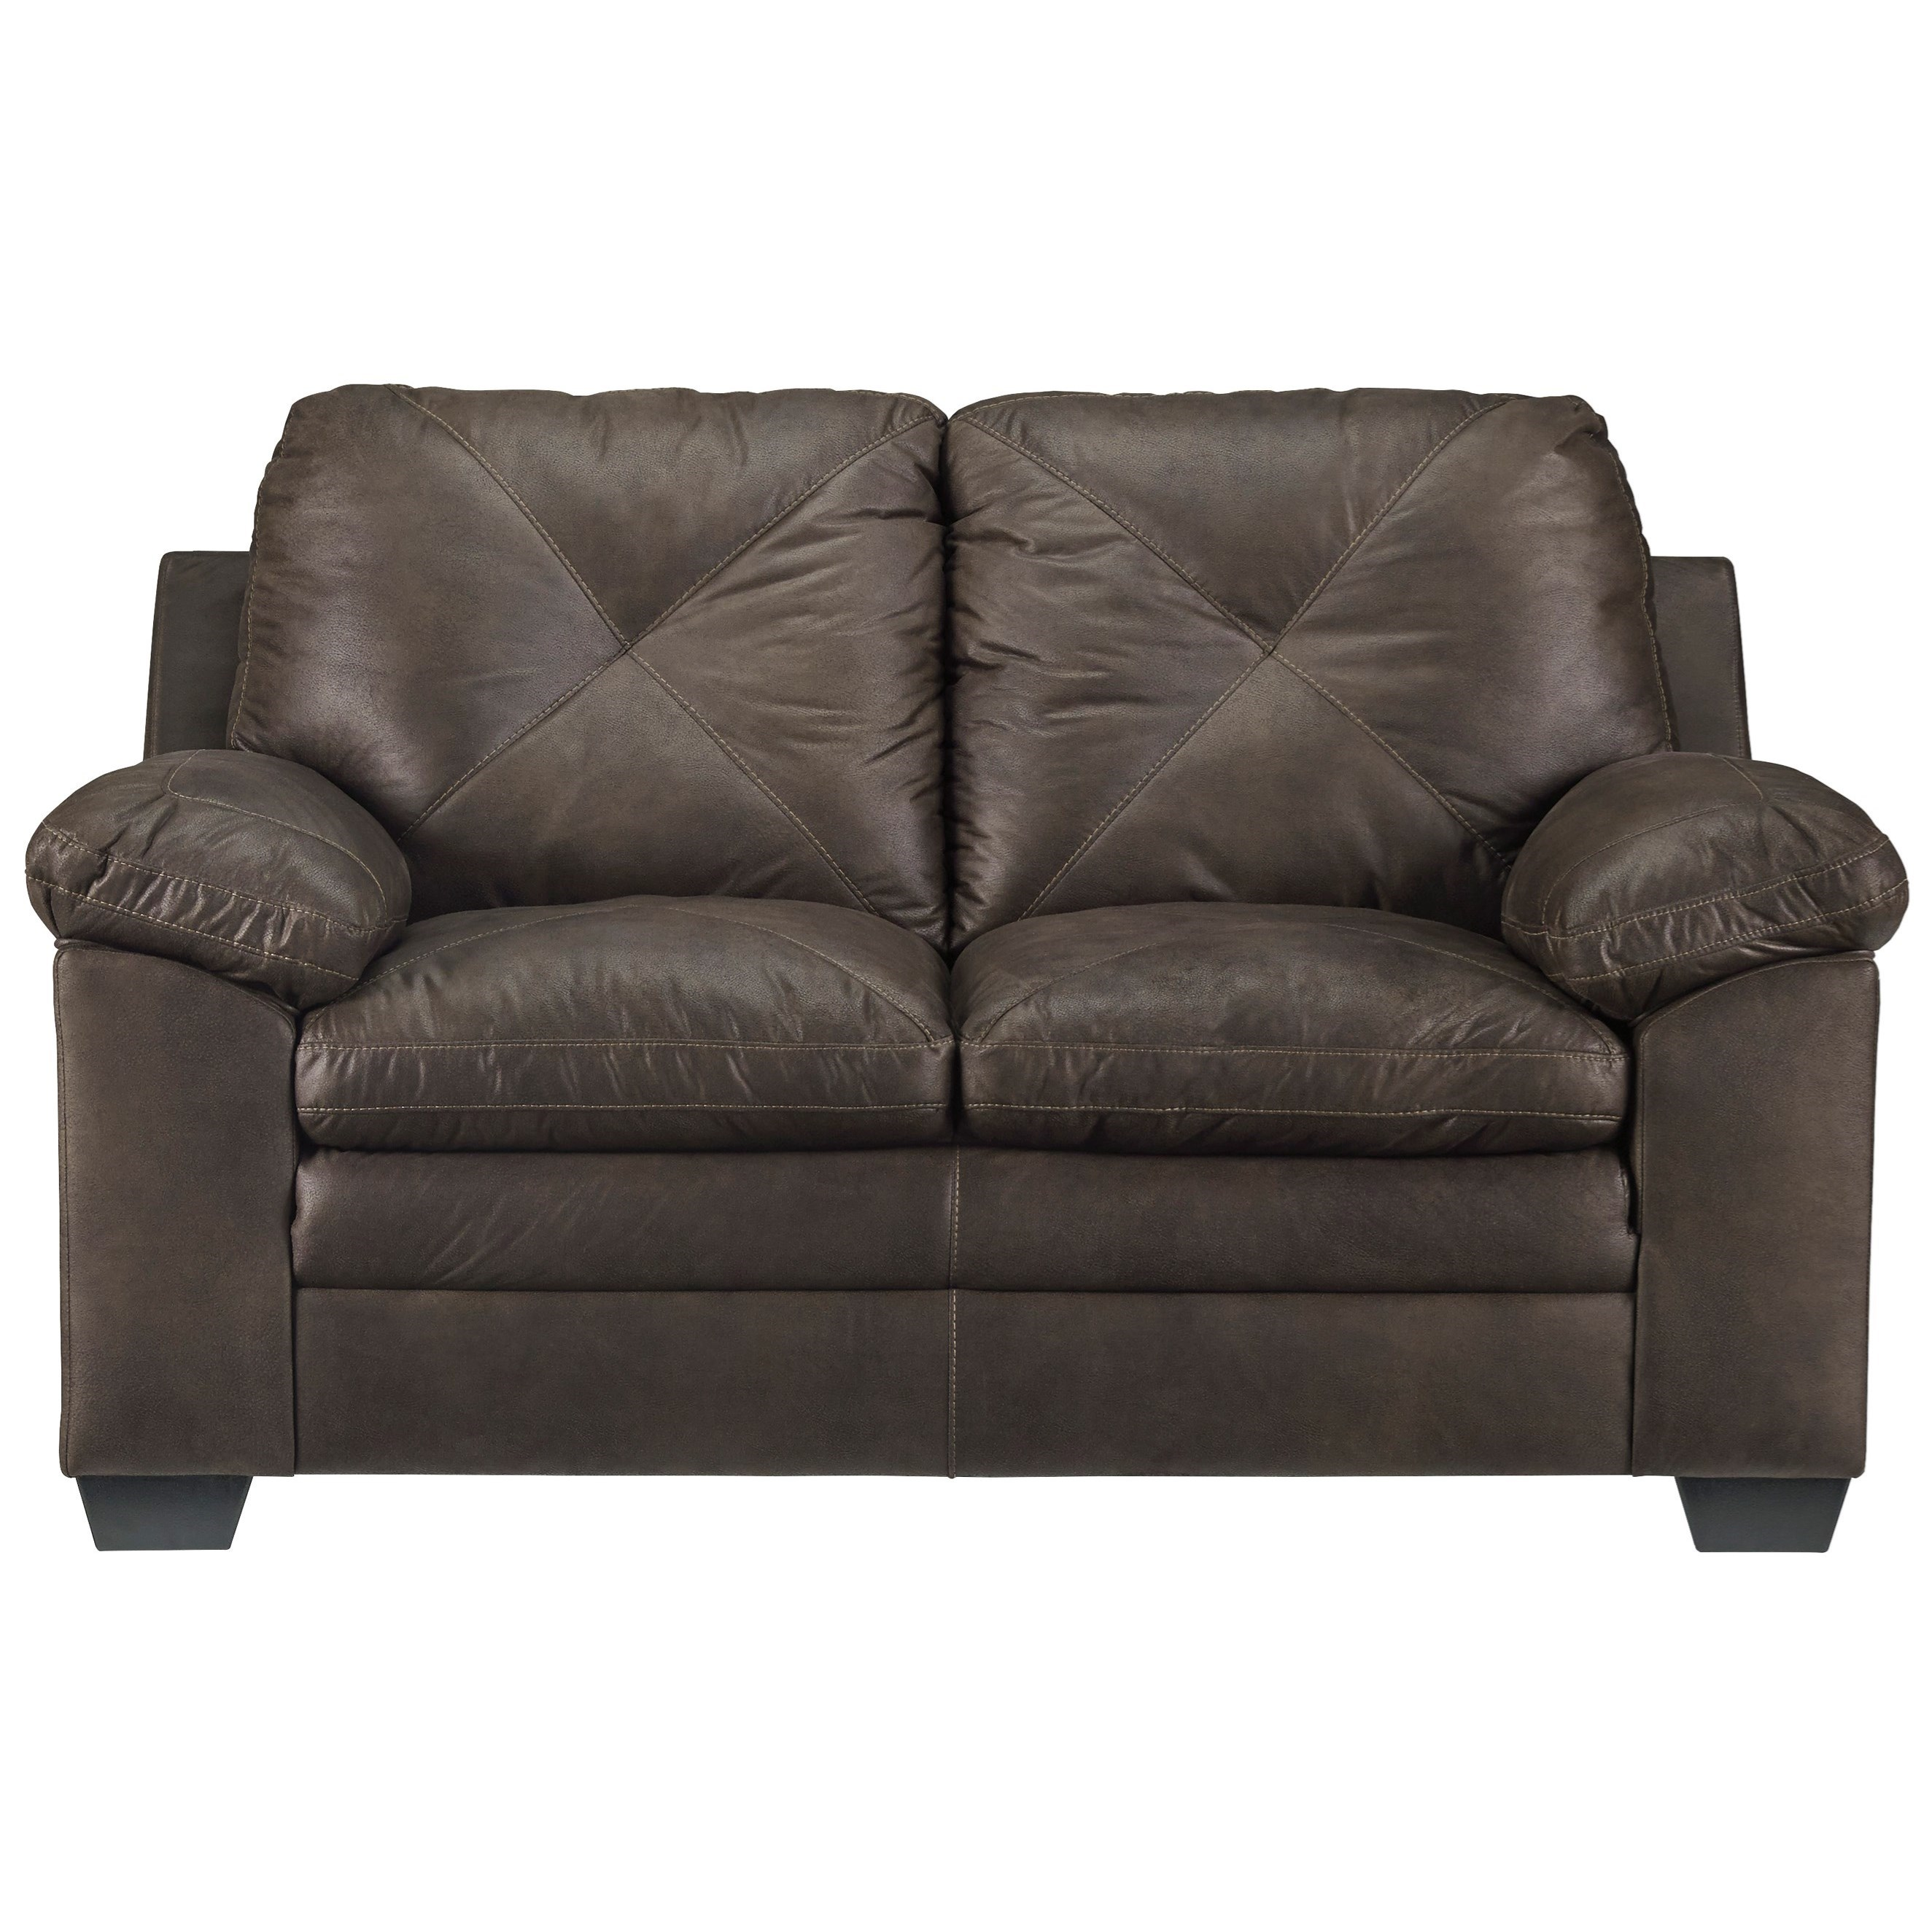 Faux Leather Loveseat With X-Back Stitching By Signature